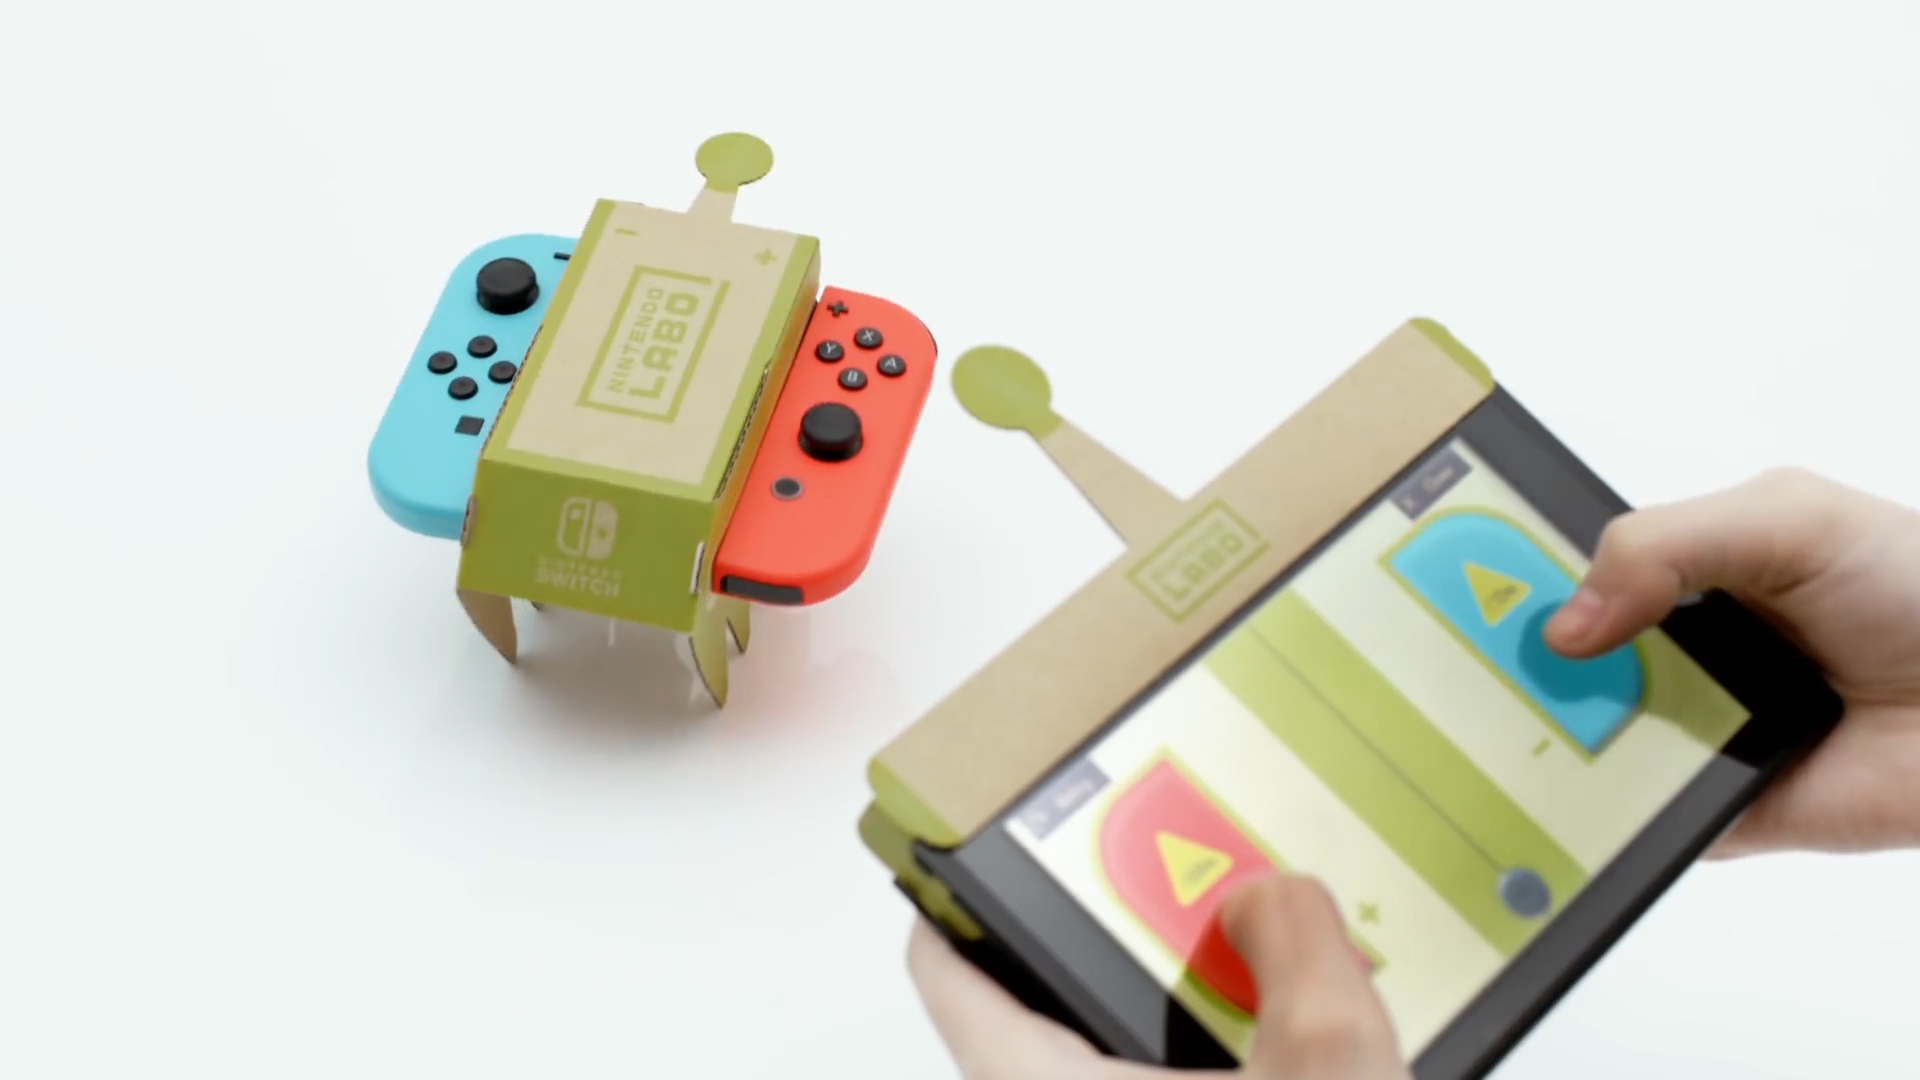 Nintendo announces Labo: A Cardboard Creator Kit for Kids